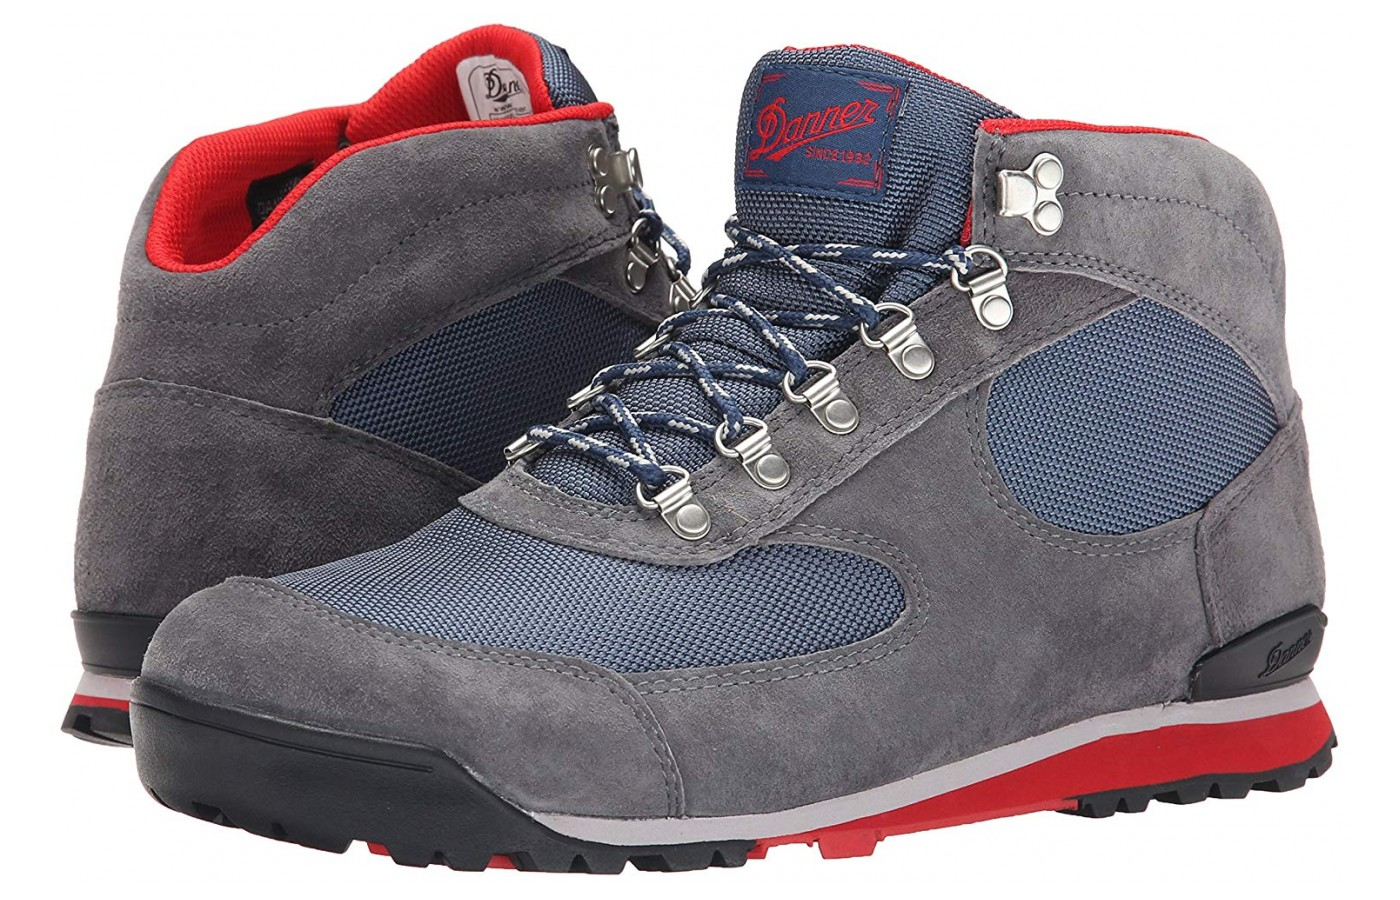 There is microfiber and soft suede used in the upper.